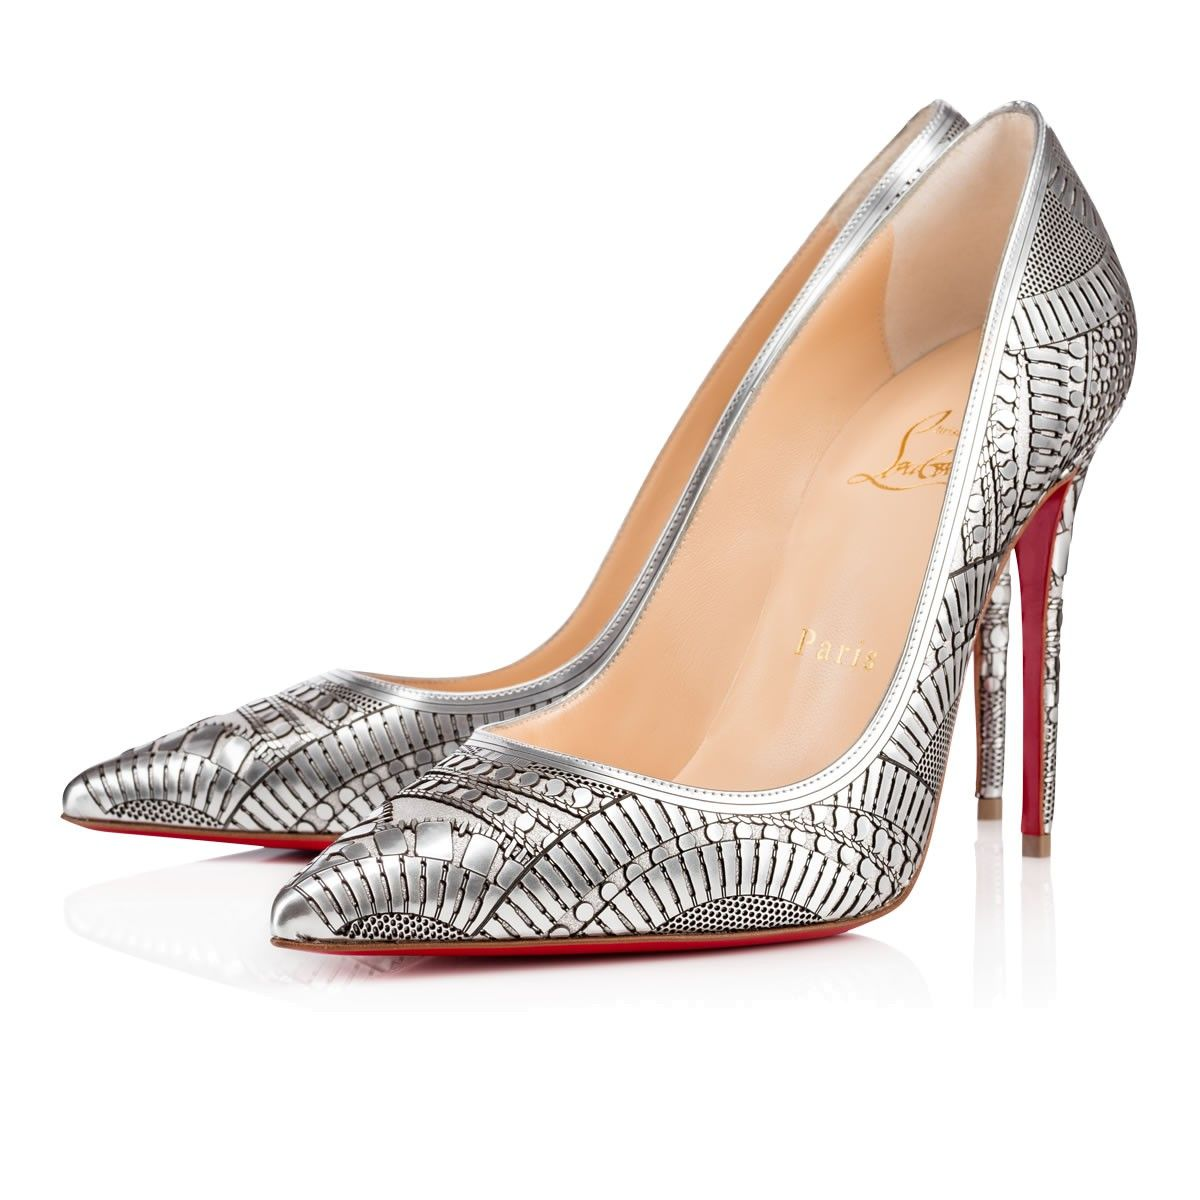 Shoes - Kristali - Christian Louboutin